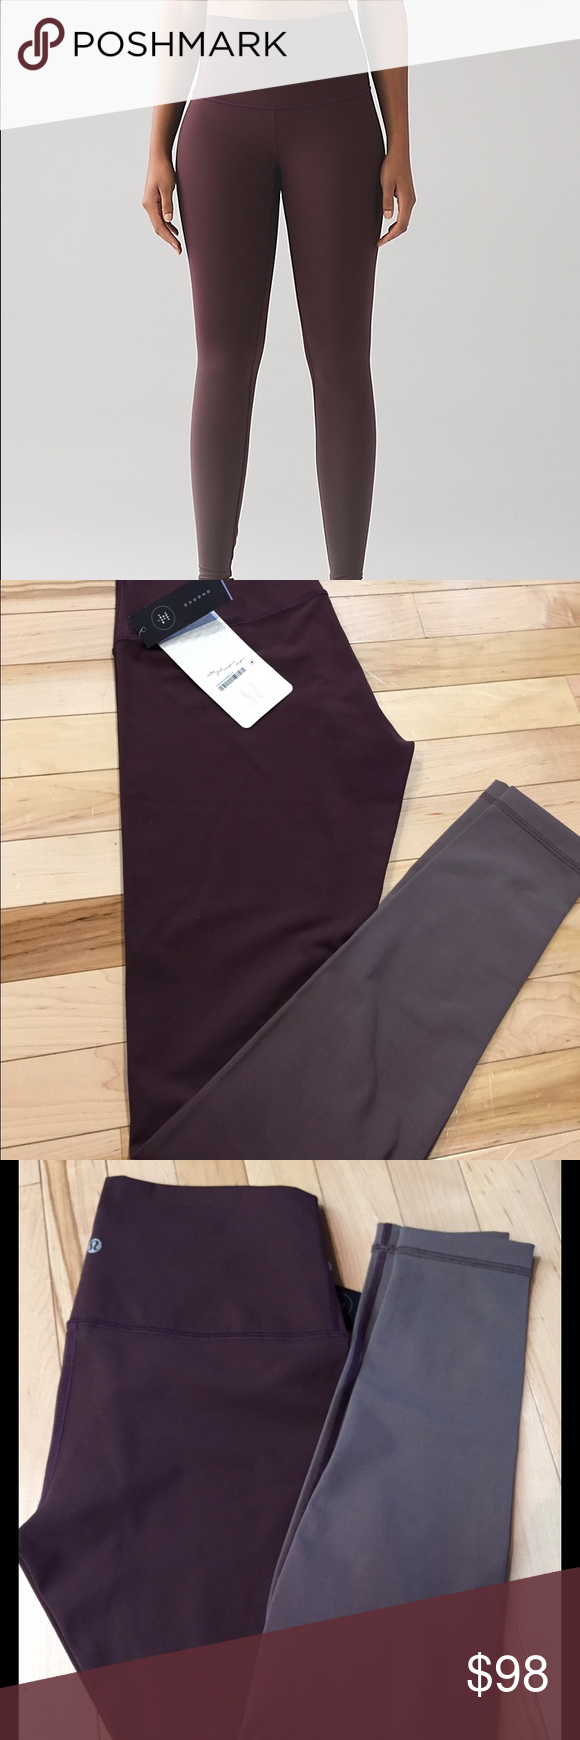 8138d37a2 NWT Lululemon Size 10 Ombre Wunder Under HR - BC New With Tags Lululemon  Ombre Wunder Unders (Full Length) - Black Cherry. Full on Luxtreme.